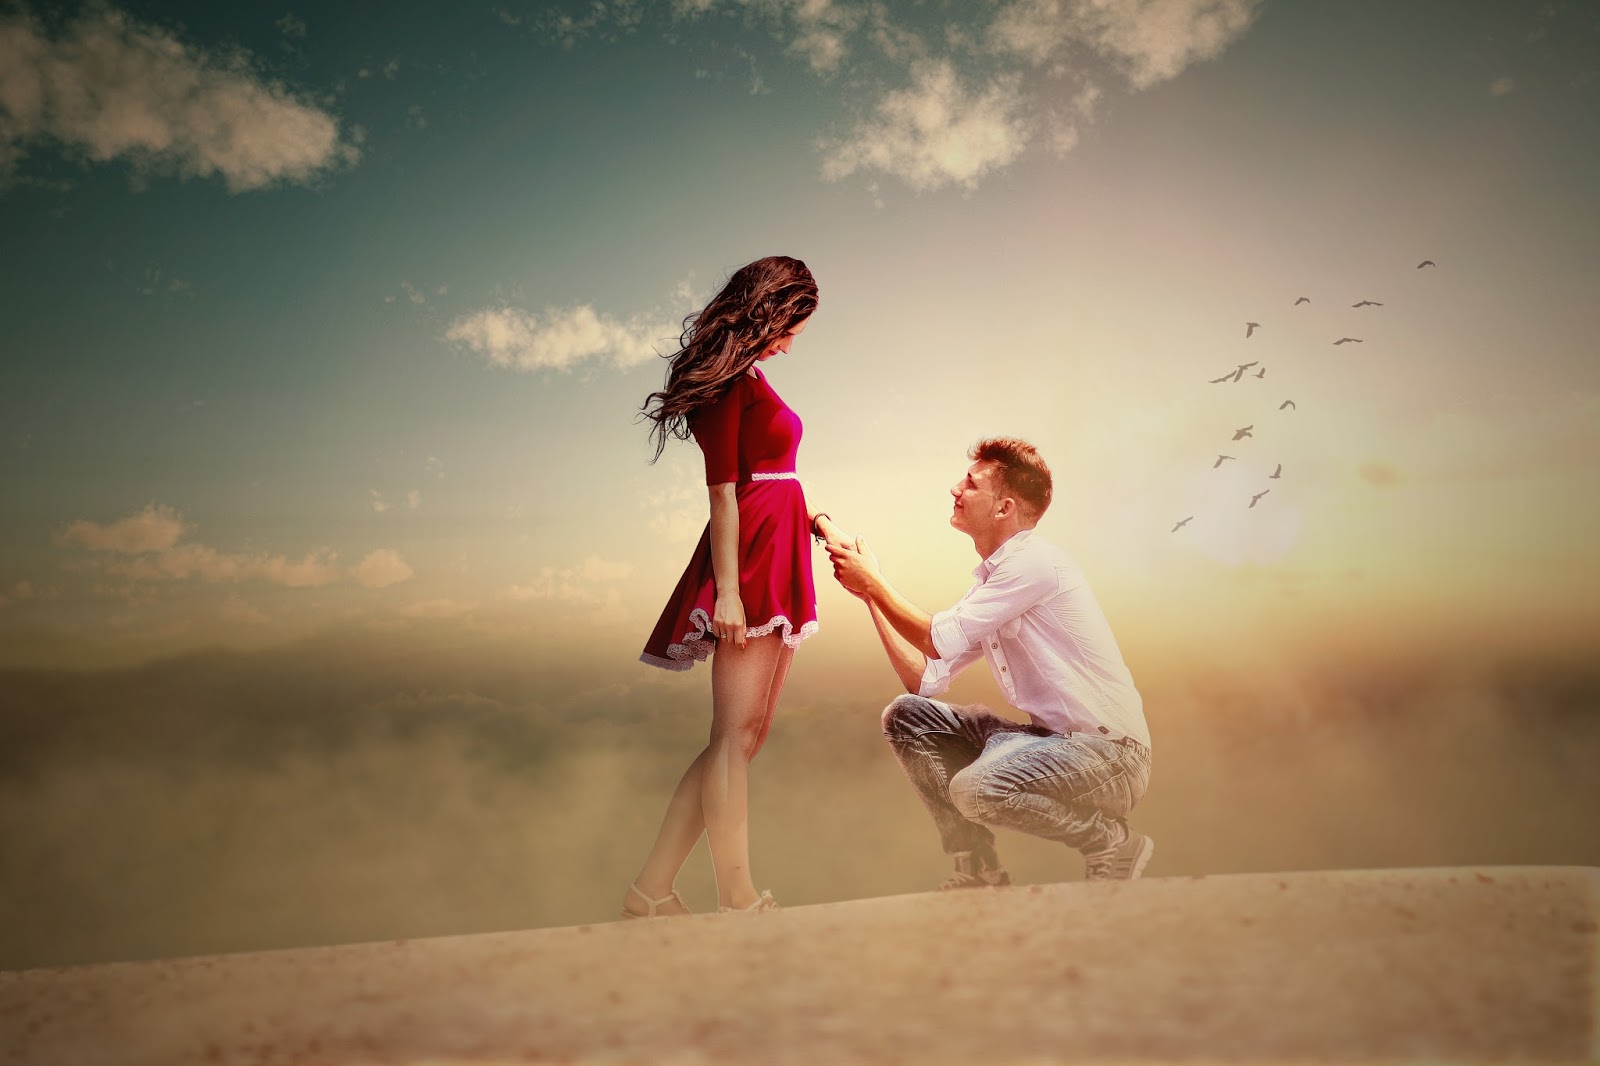 Couple Photo Editing Photoshop You Should Know About